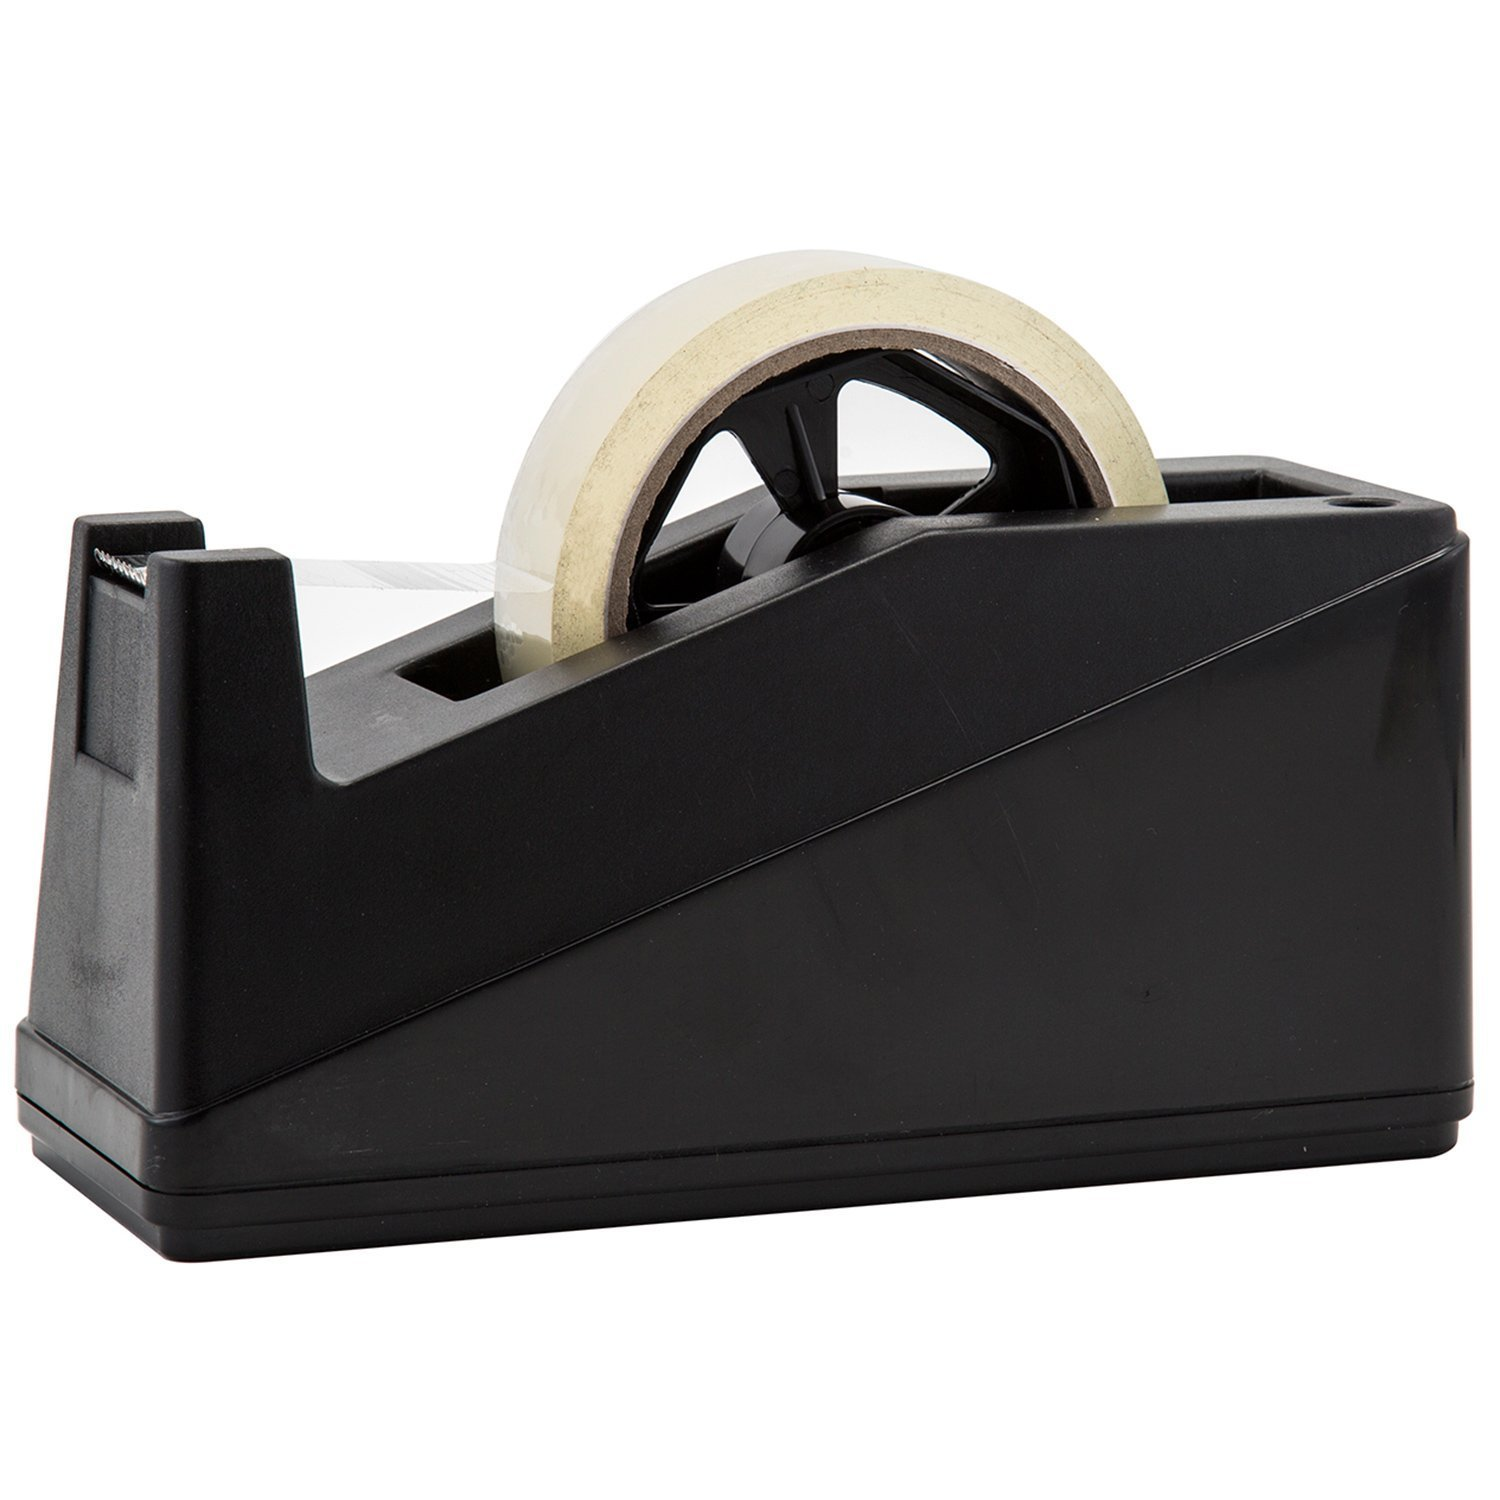 Desktop Tape Dispenser Adhesive Roll Holder (Fits 1'' & 3'' Core) by Royal Imports with Weighted Nonskid Base, Black